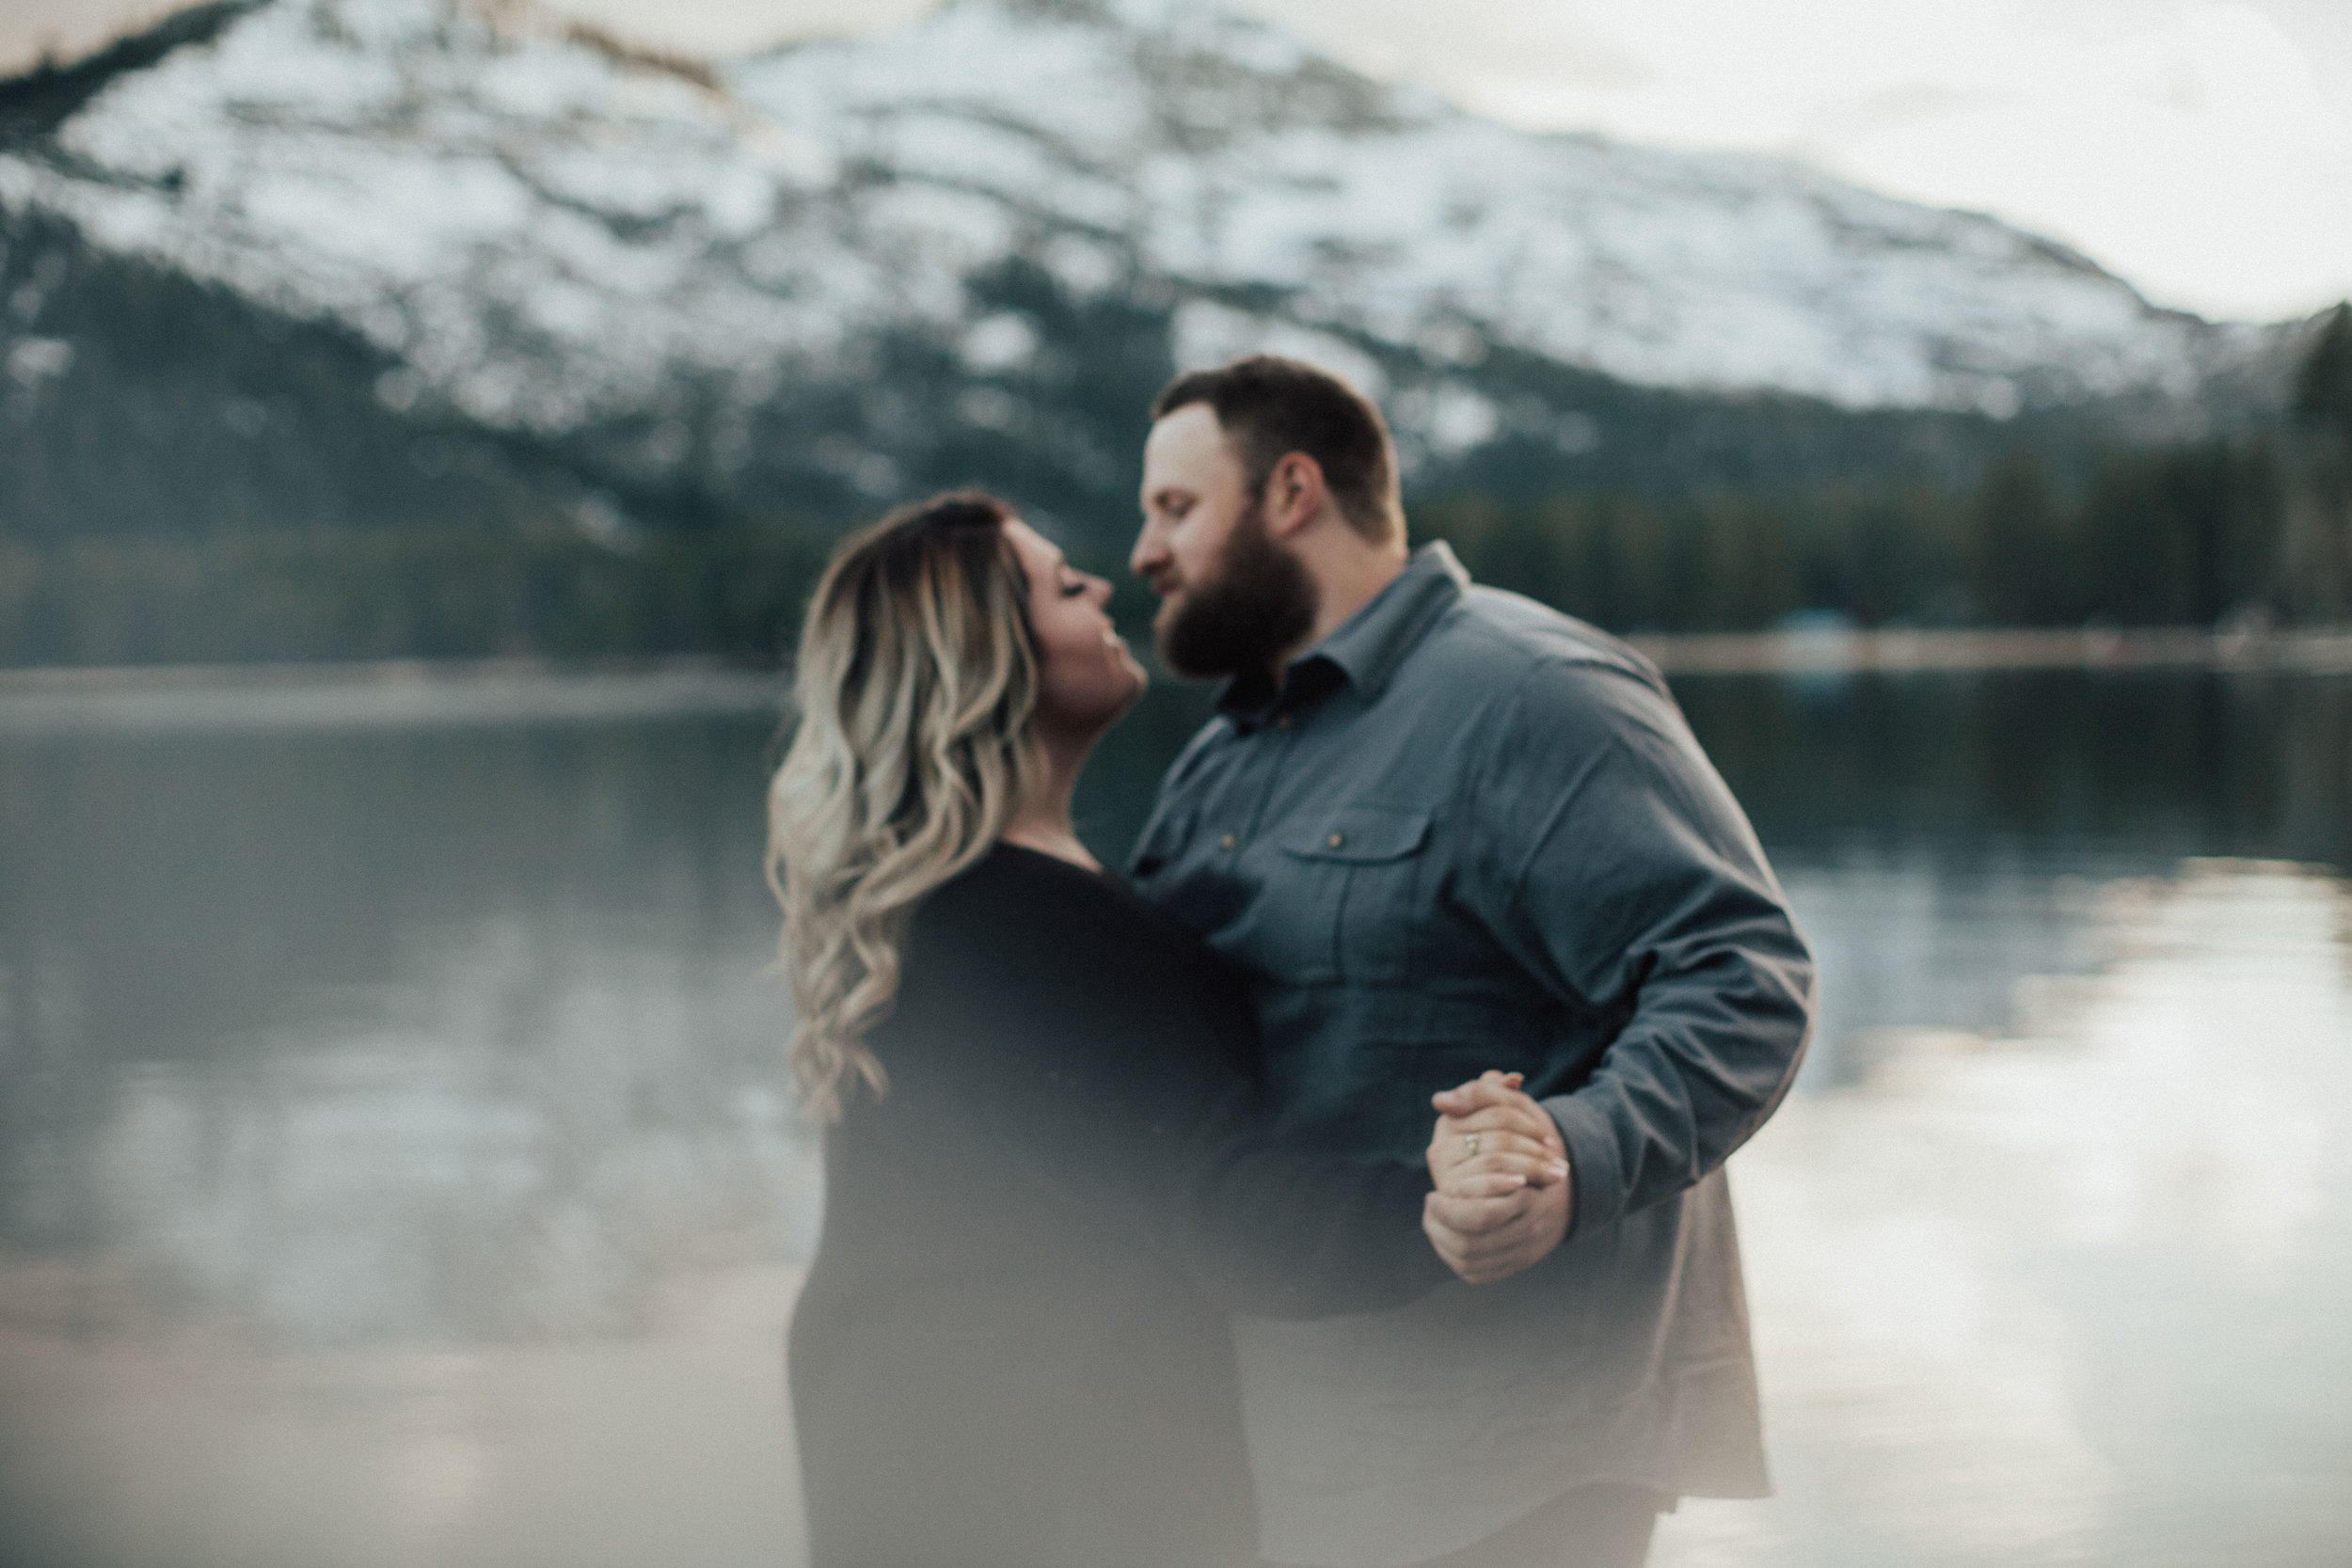 Dancing together during their engagement session.